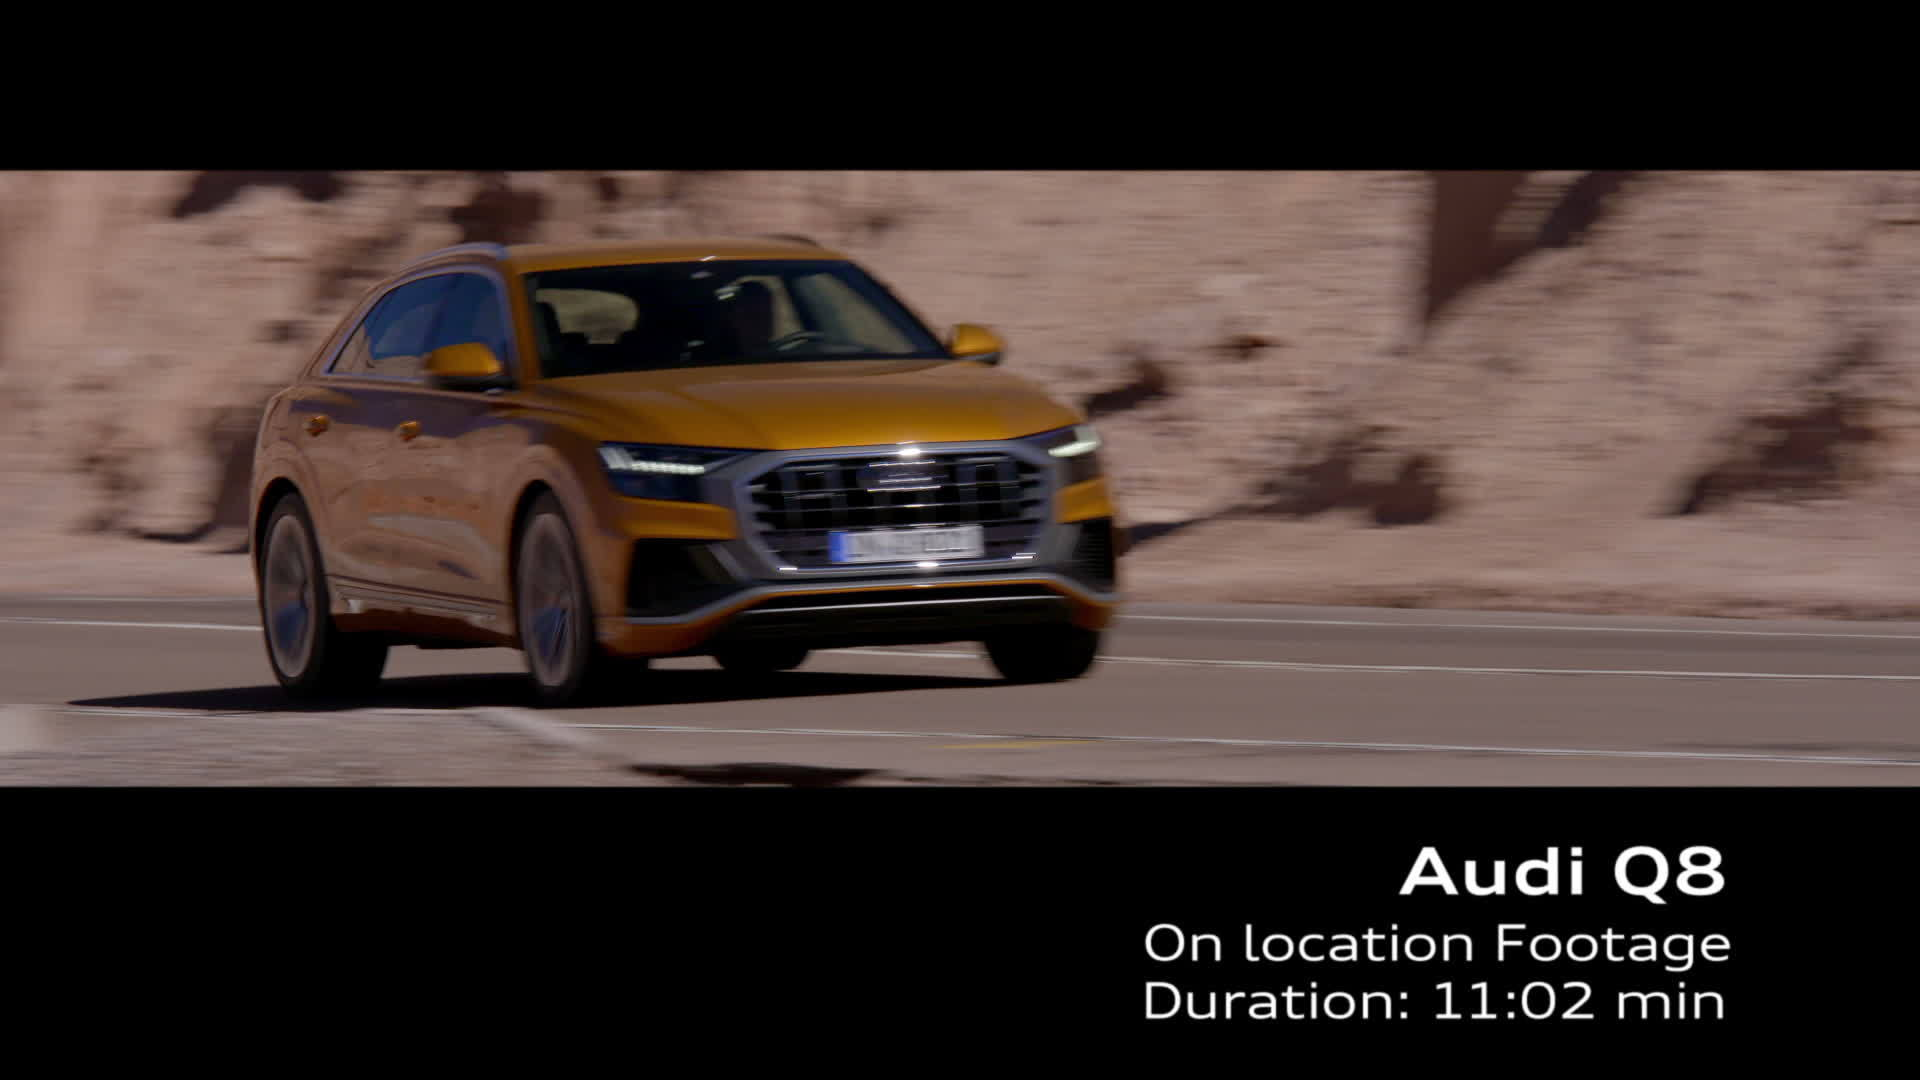 Audi Q8 Footage Chile Dragon orange